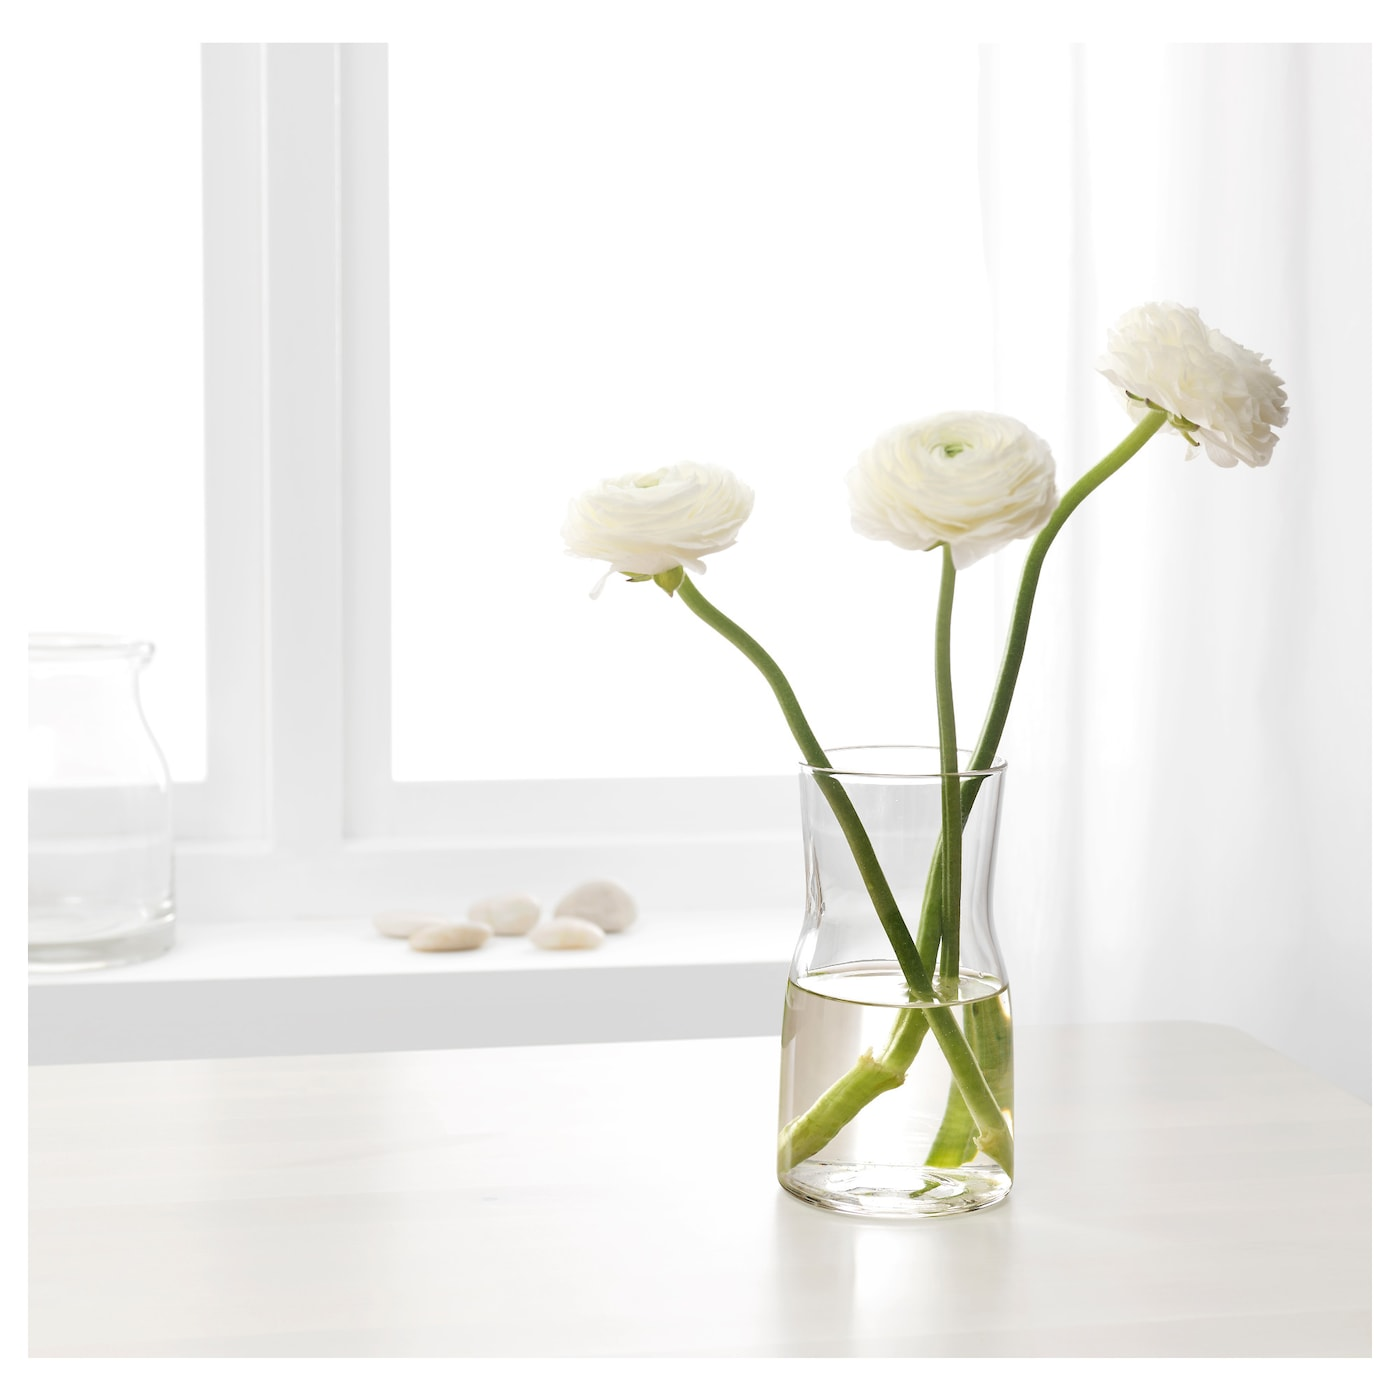 Tidvatten vase clear glass 18 cm ikea ikea tidvatten vase the vase is perfect for tulips and other short stemmed flowers reviewsmspy